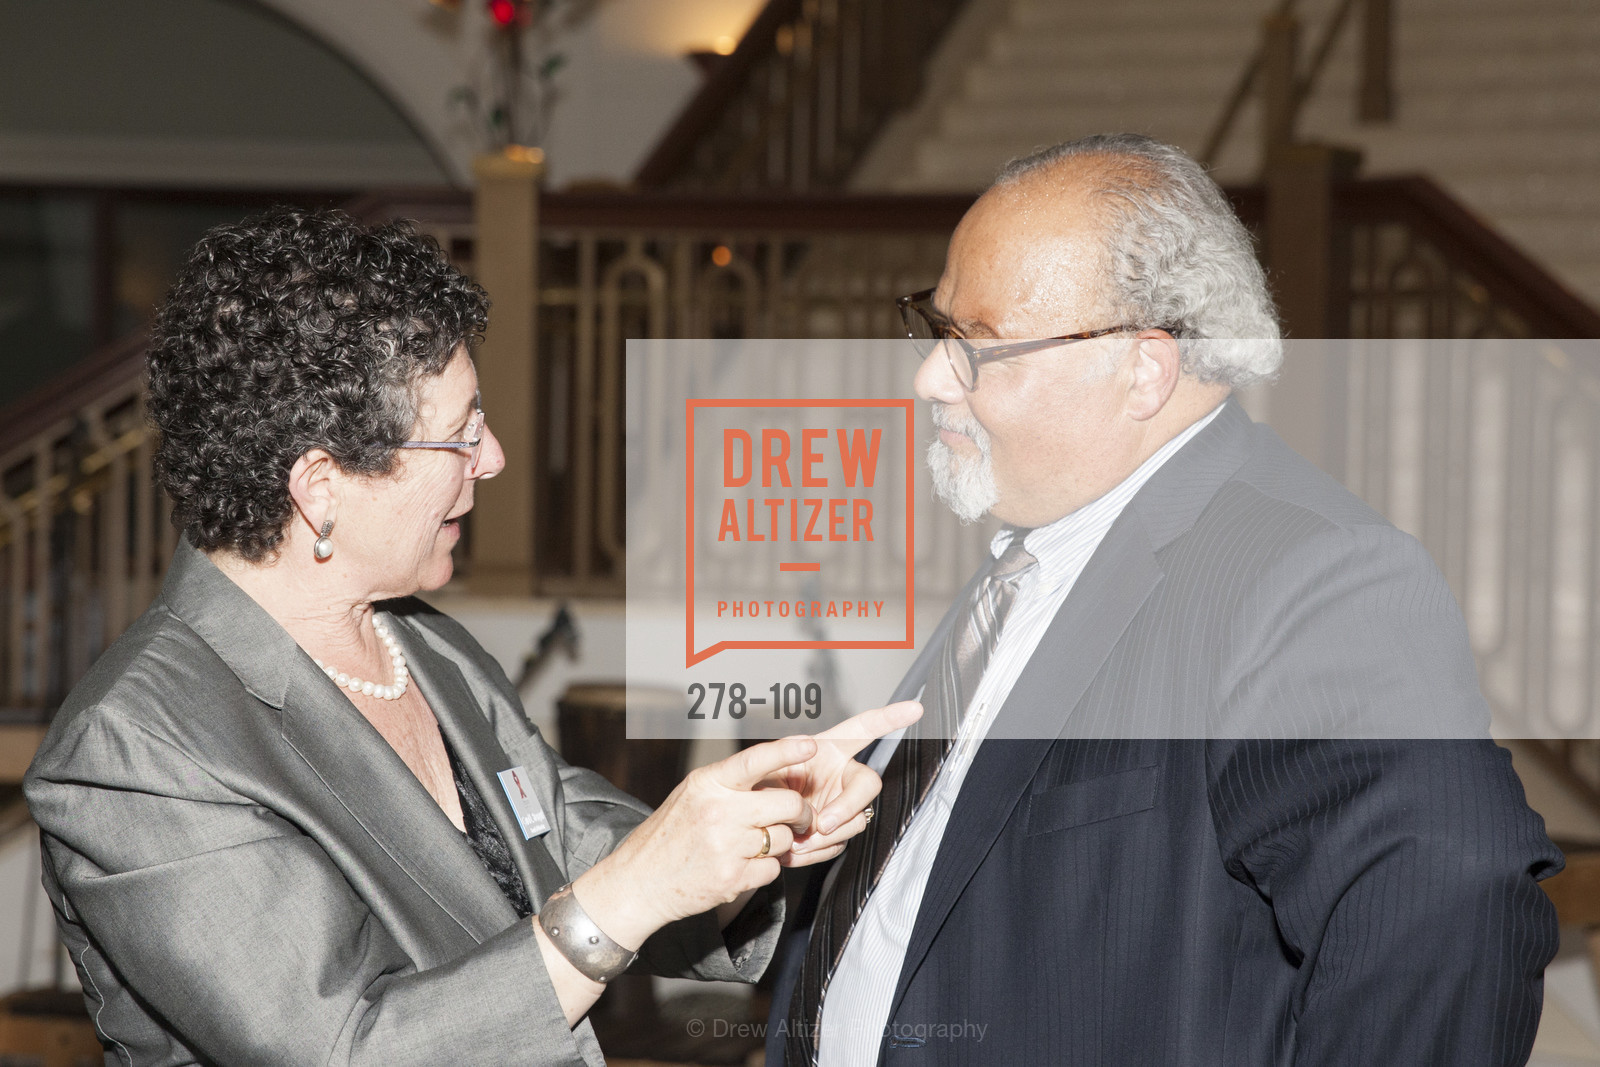 Carol Brosgart, Eric Goosley, PANGAEA GLOBAL HEALTH Leadership Dinner at Rotunda in Oakland, The Rotunda. Oakland, May 11th, 2015,Drew Altizer, Drew Altizer Photography, full-service agency, private events, San Francisco photographer, photographer california